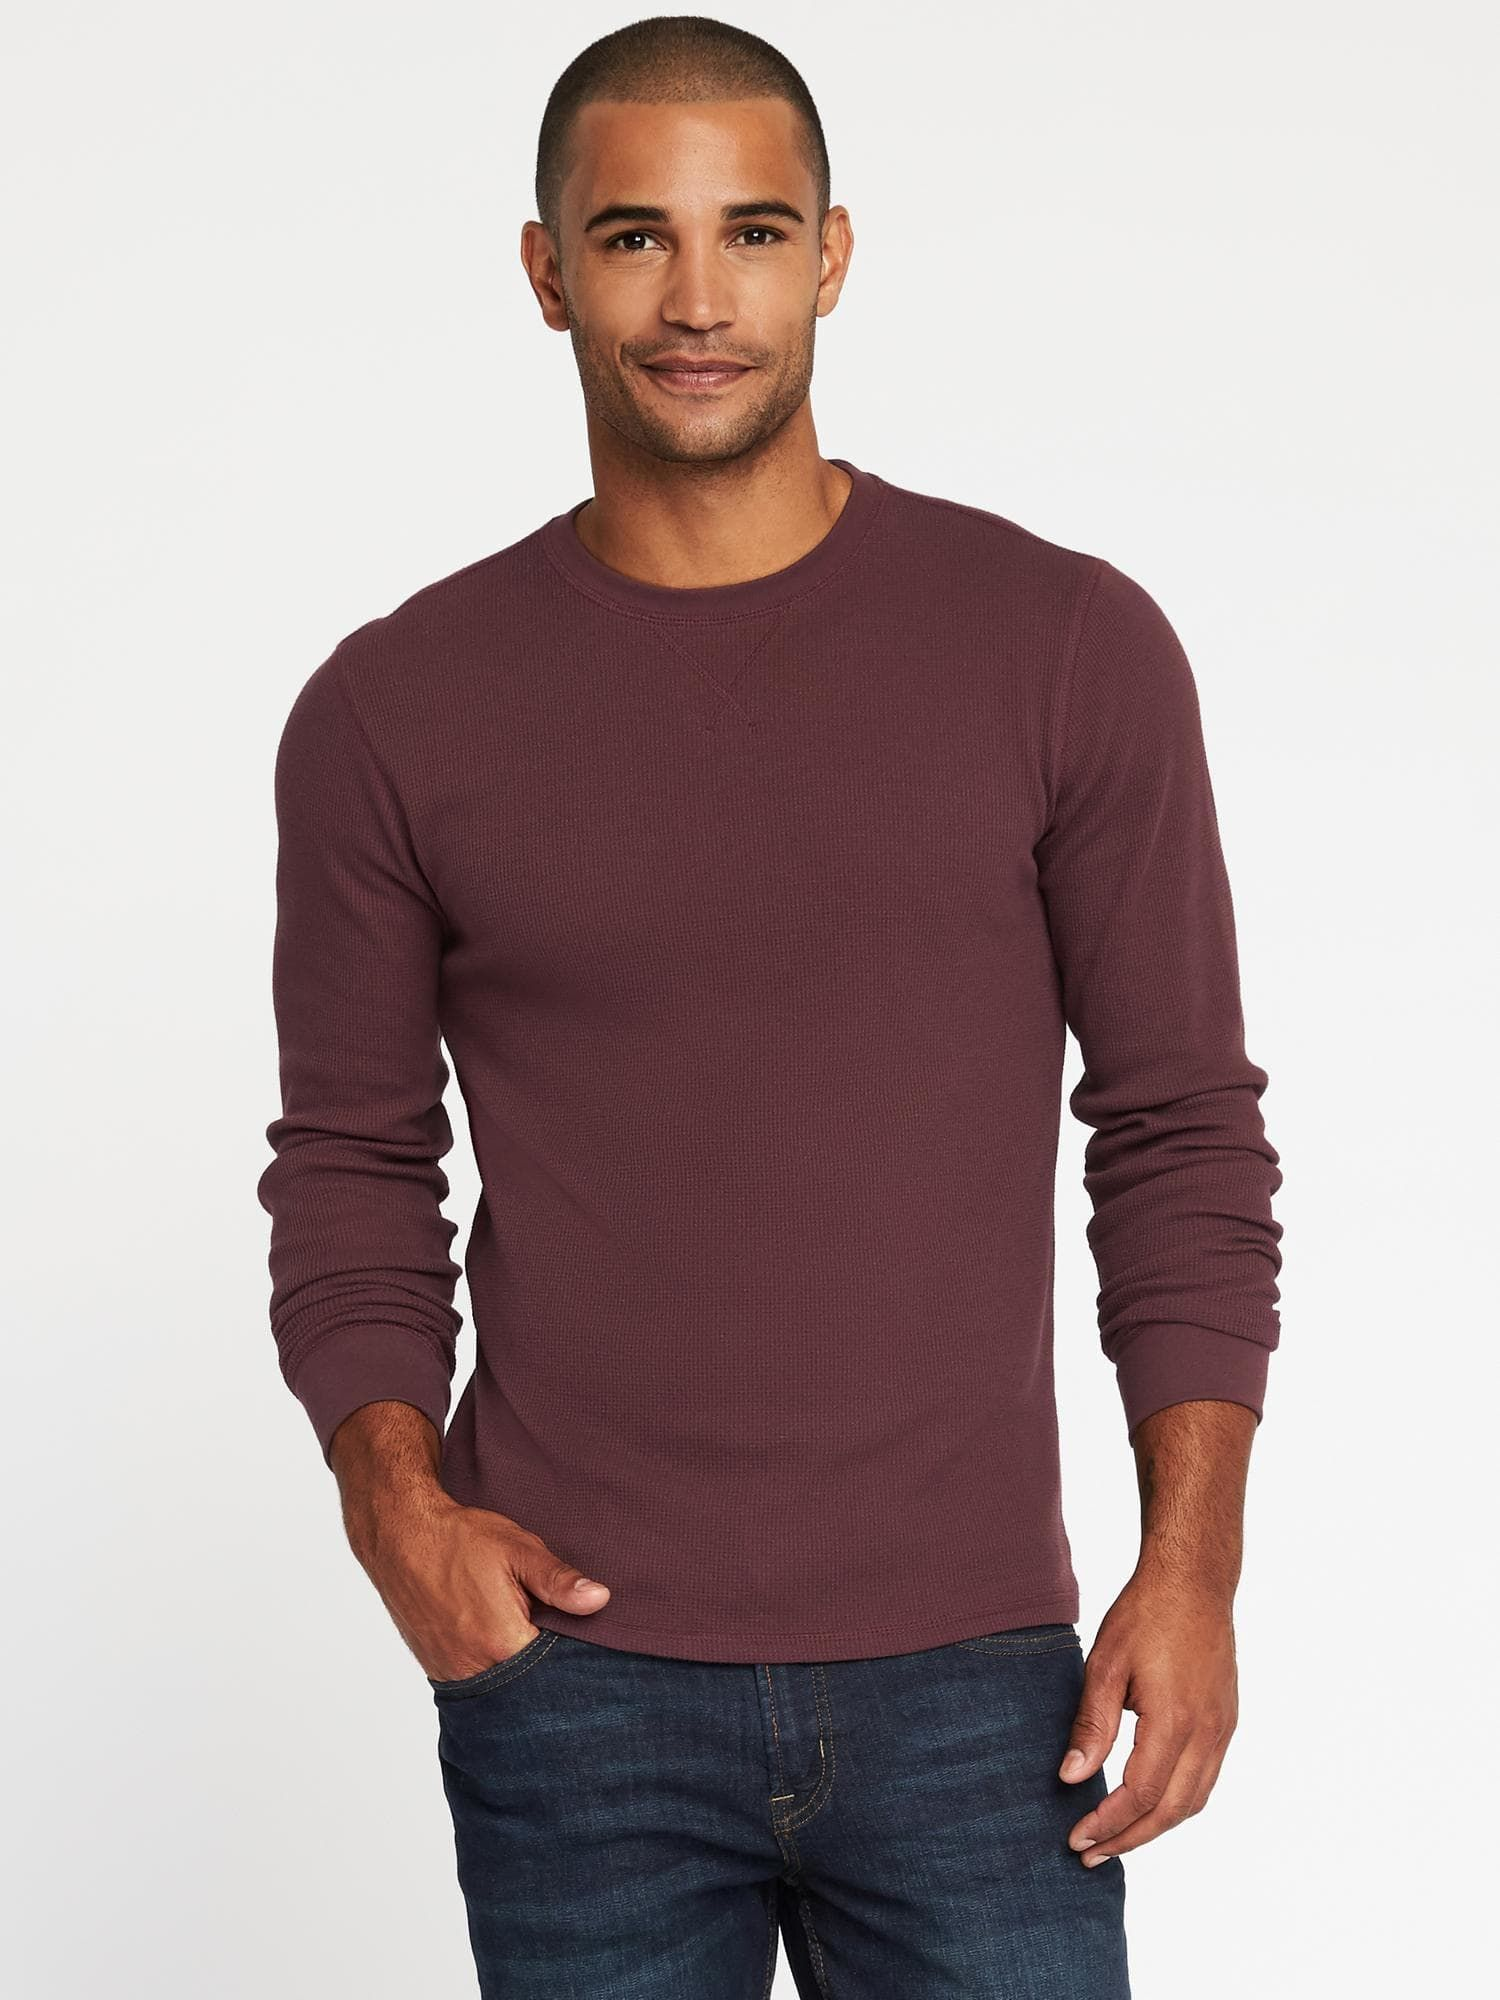 Soft-Washed Built-In Flex Thermal Tee for Men|old-navy- Large ...